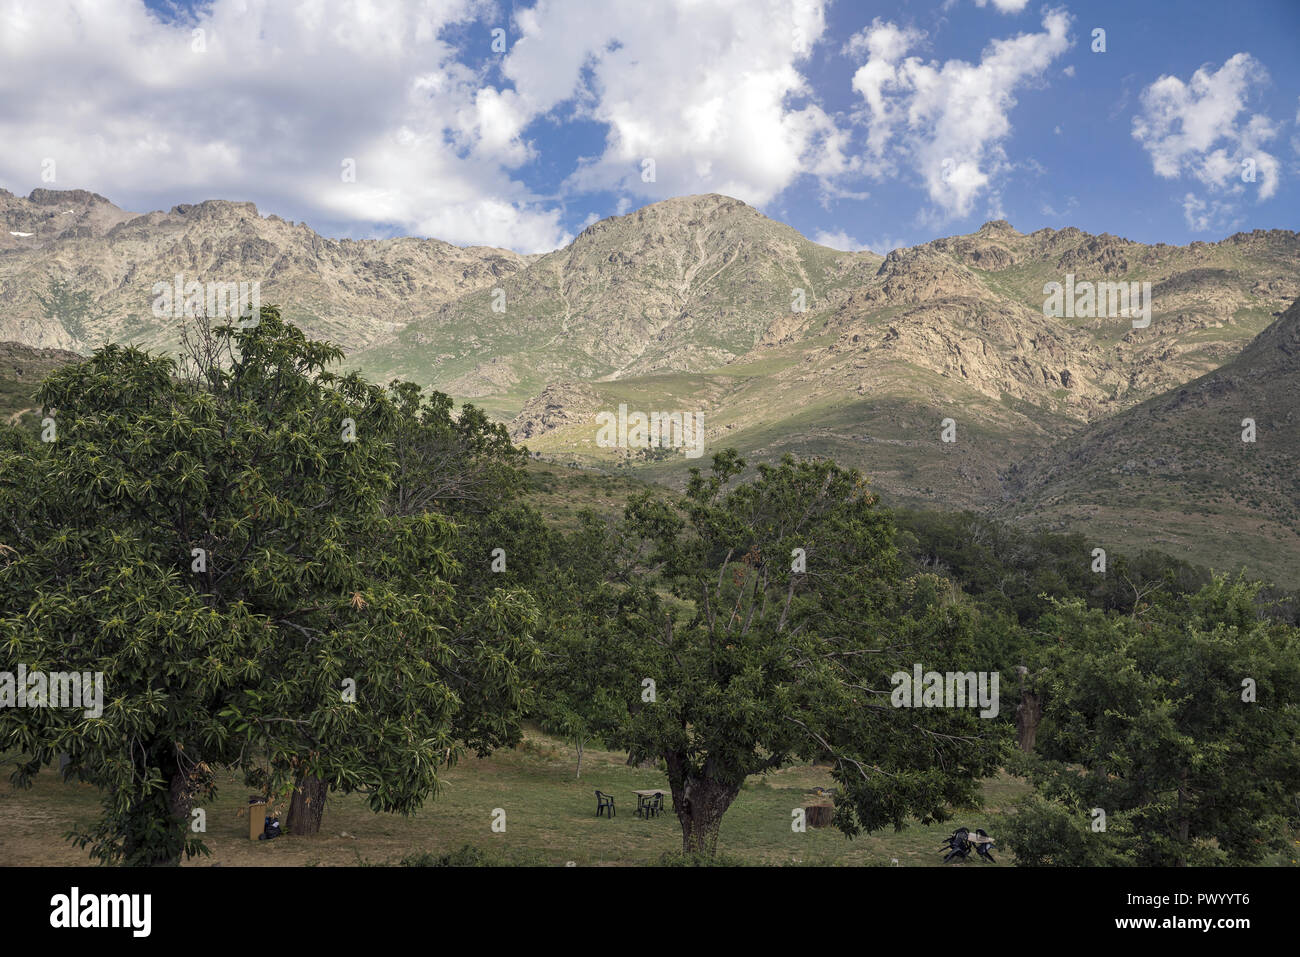 A chestnut orchard on the background of mountains. Massif Monte Cinto, the highest mountain in Corsica (2706 m). Masyw Monte Cinto, najwyższa góra. - Stock Image